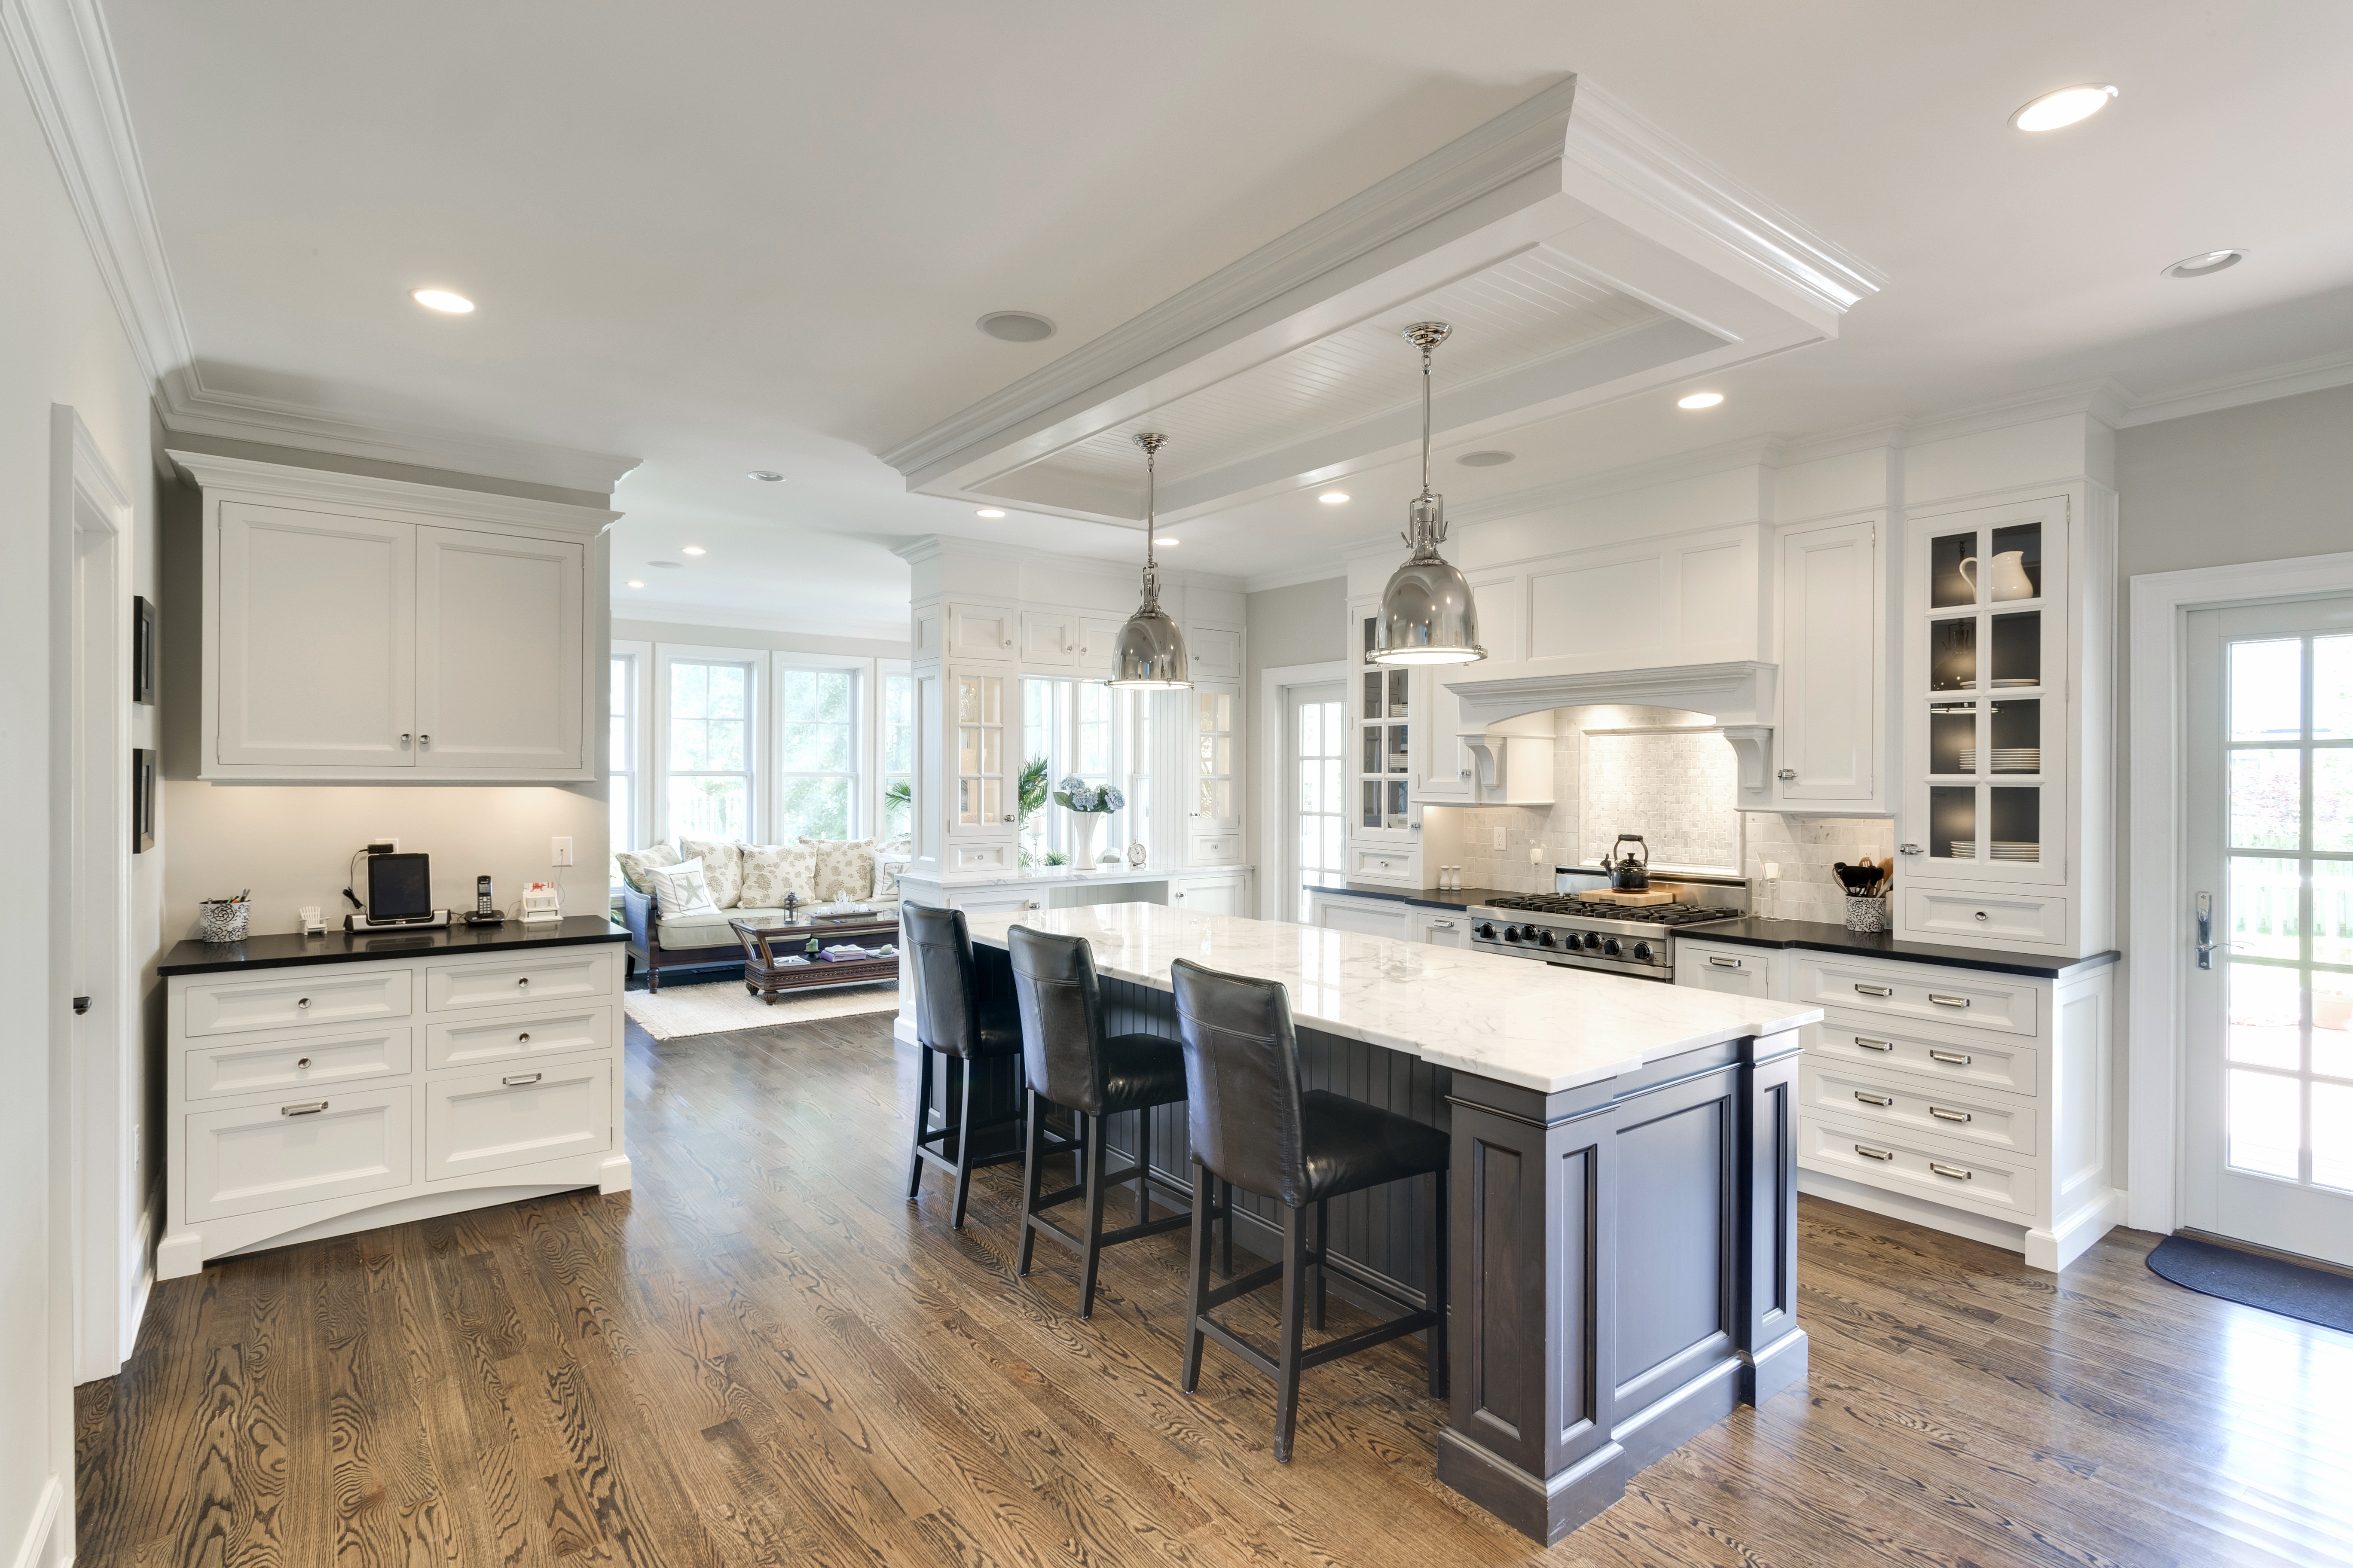 Kitchen upgrades you must have